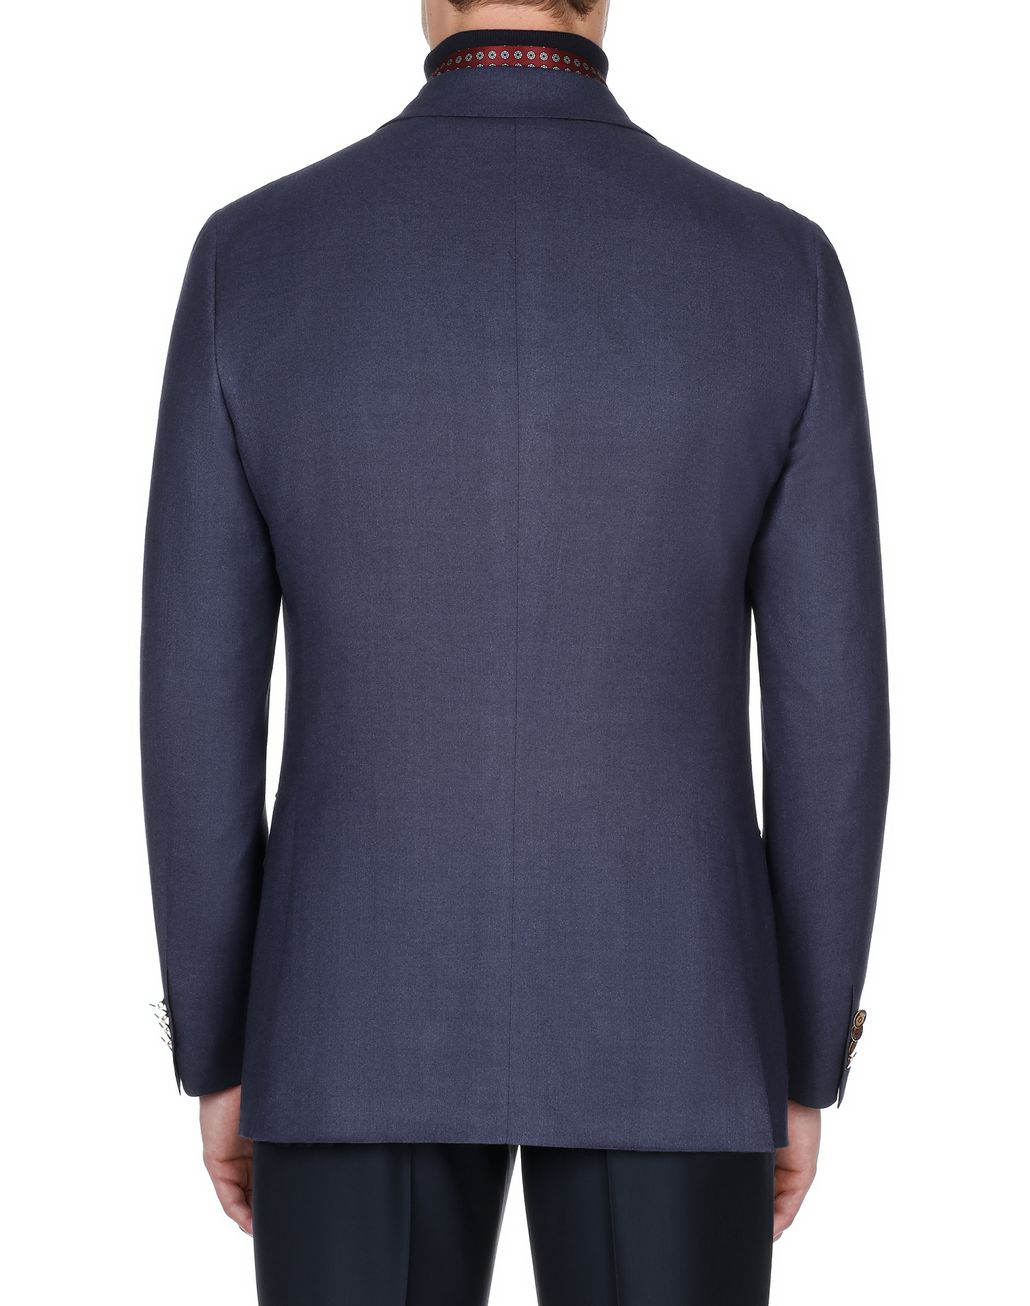 BRIONI Navy Blue Ravello Jacket Suits & Jackets Man d